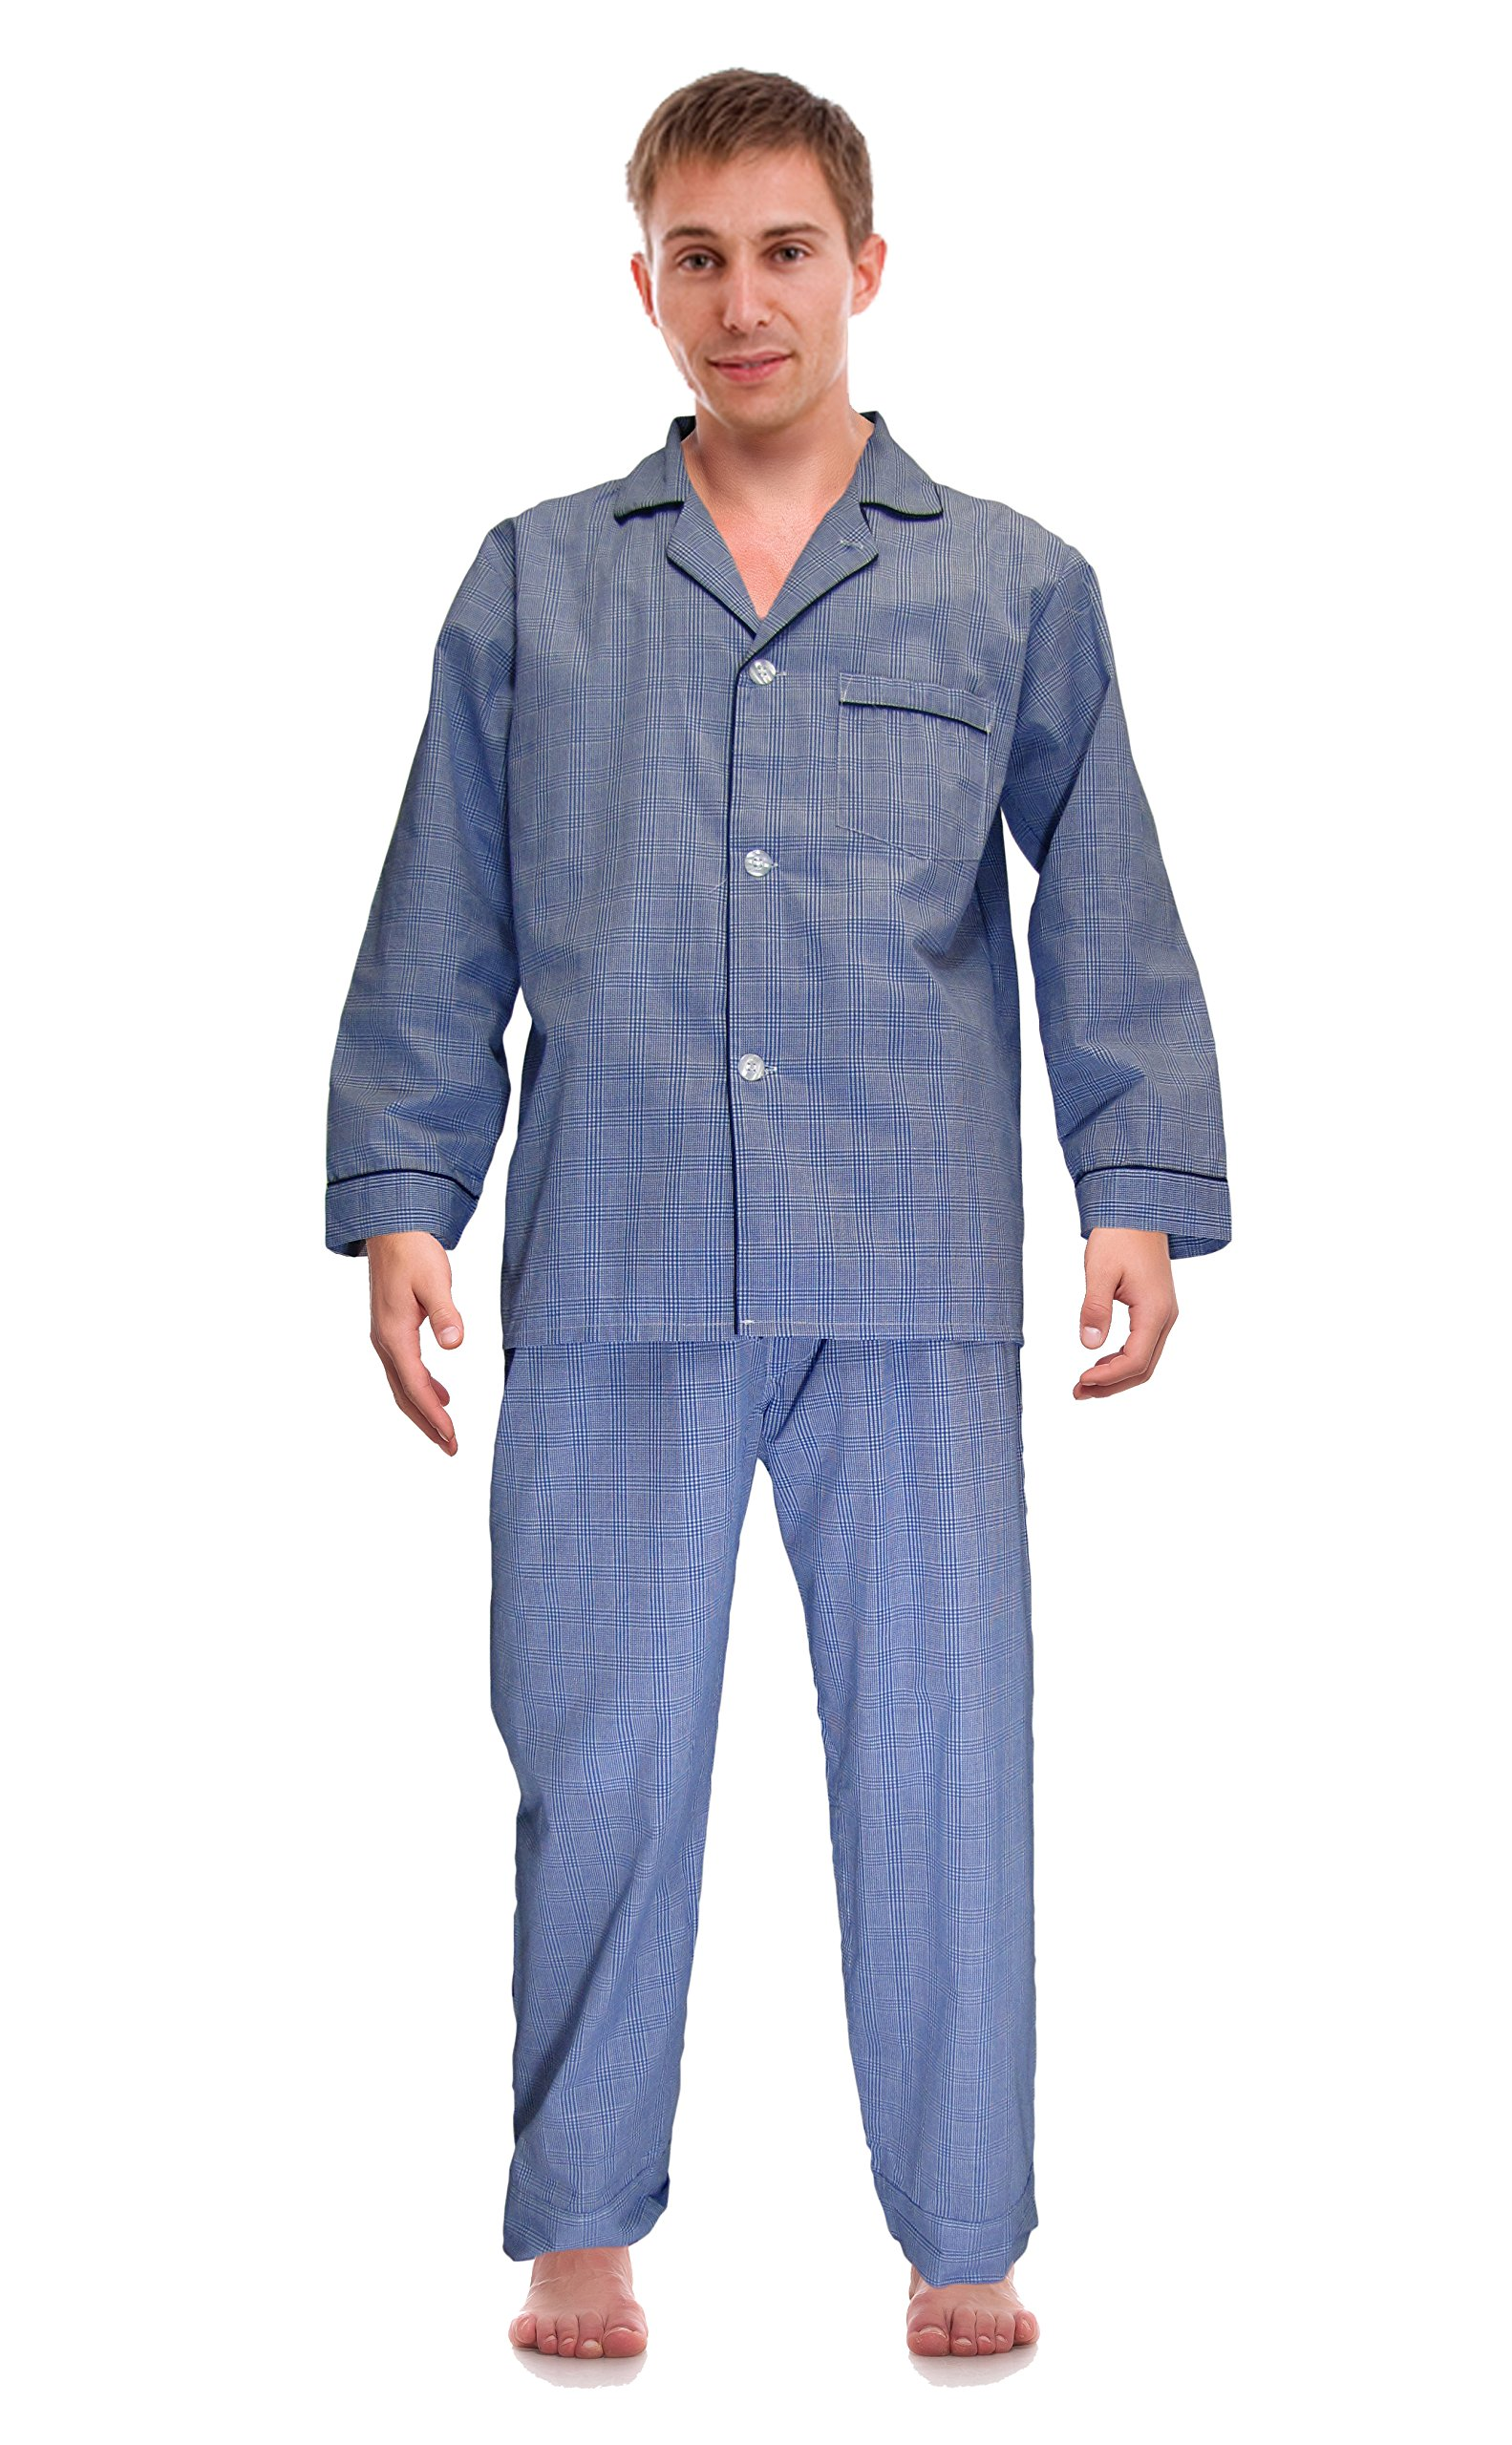 RK Classical Sleepwear Mens Broadcloth Woven Pajama Set, Size Medium, Royal Blue, Plaid by Robes King